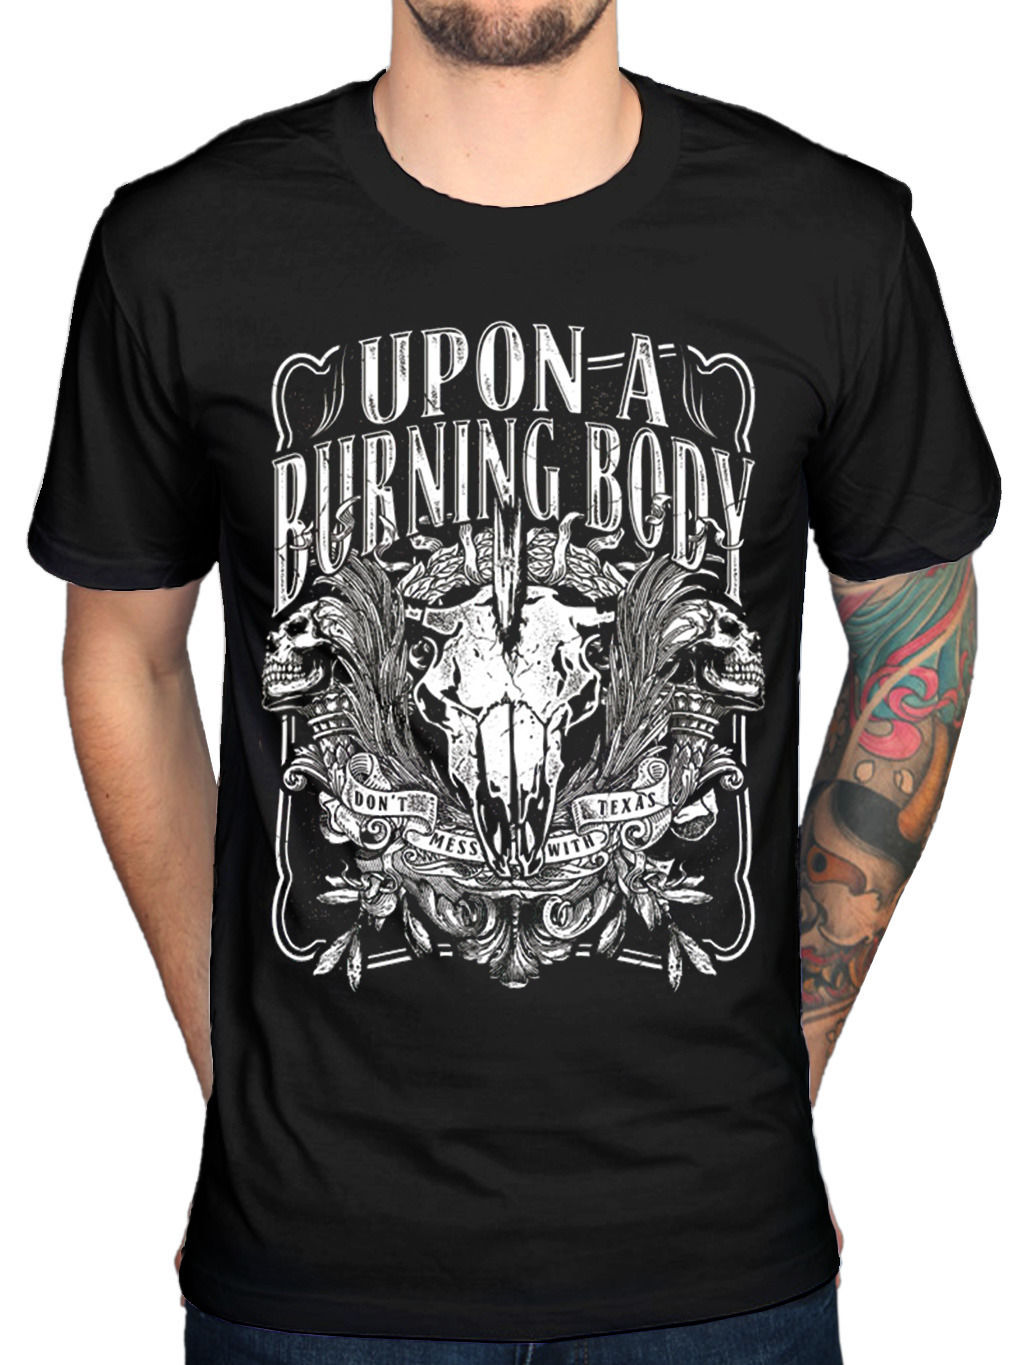 2017 MenS Fashion Upon A Burning Body Texas T Shirt Red White Green Genocide The World Design T Shirt High Quality Cool